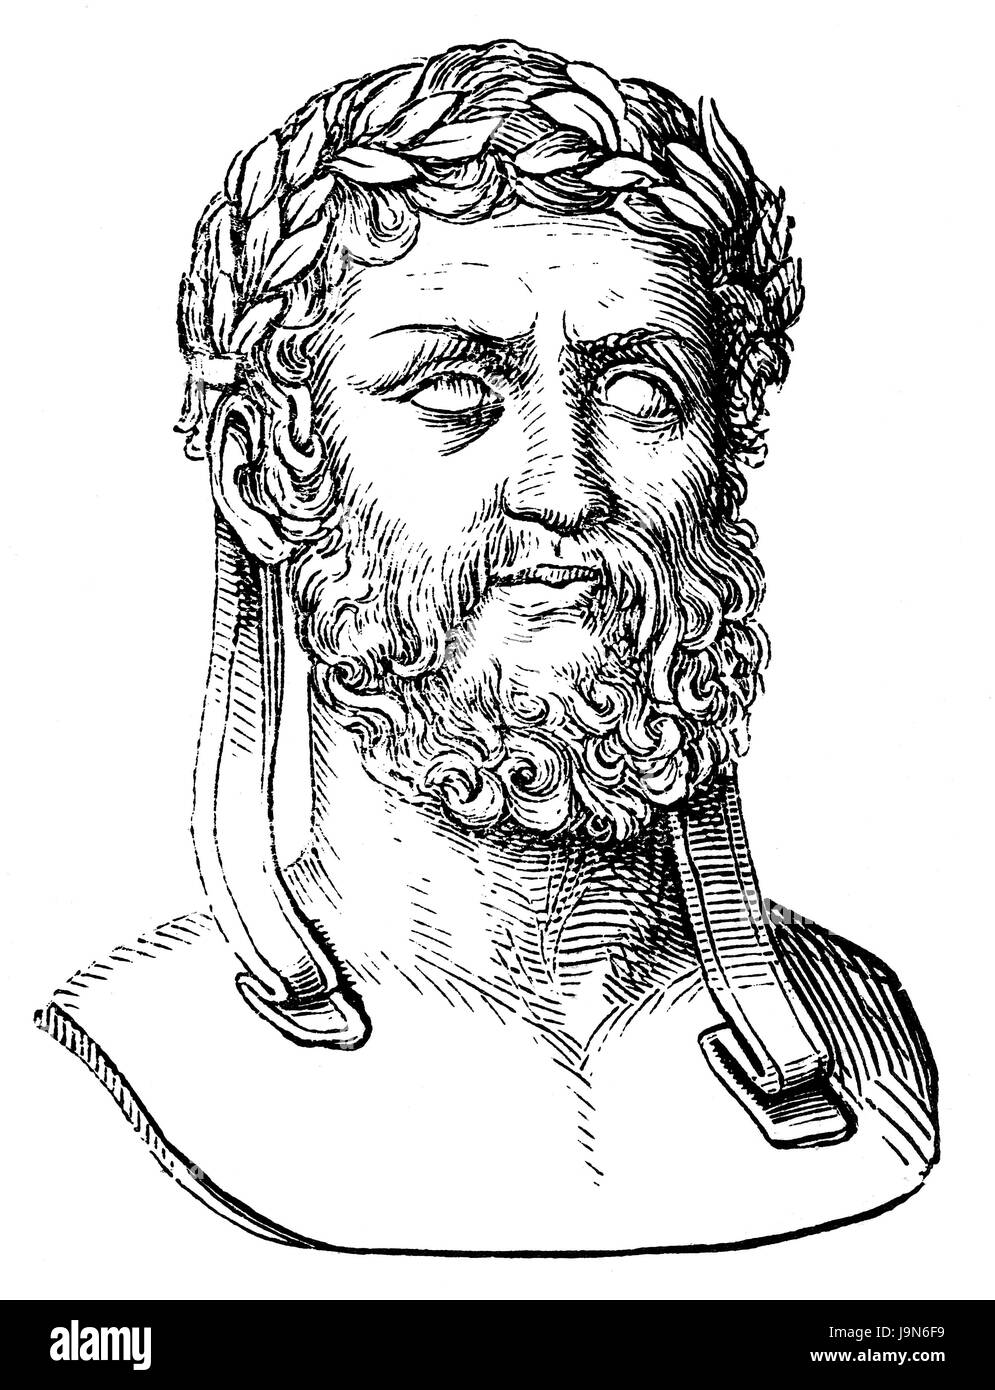 Xenophon of Athens, c. 430-354 BC, an ancient Greek philosopher, historian, soldier - Stock Image